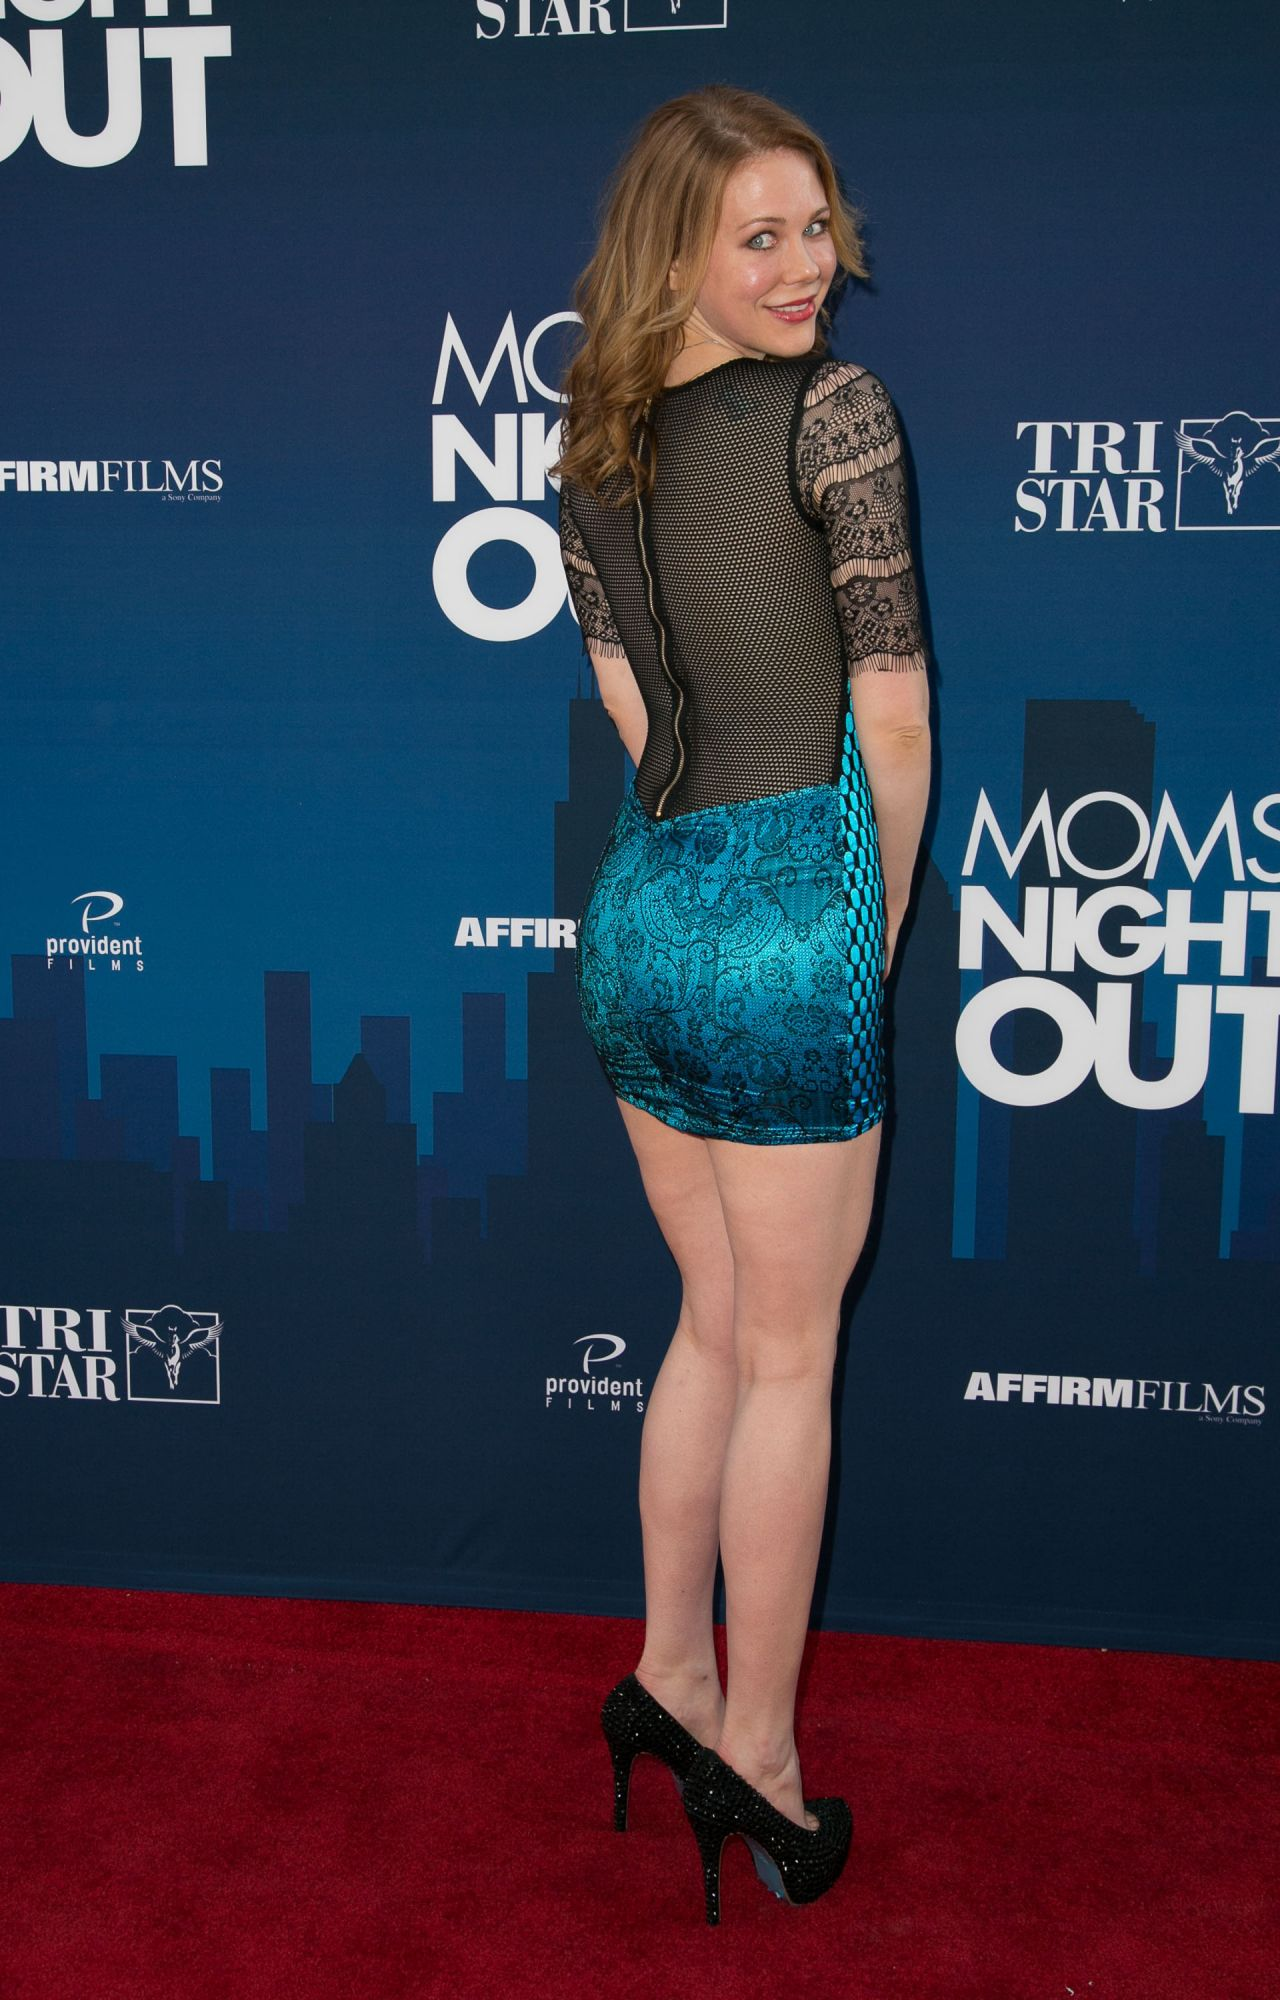 Maitland Ward - Moms Night Out Premiere In Hollywood-5991